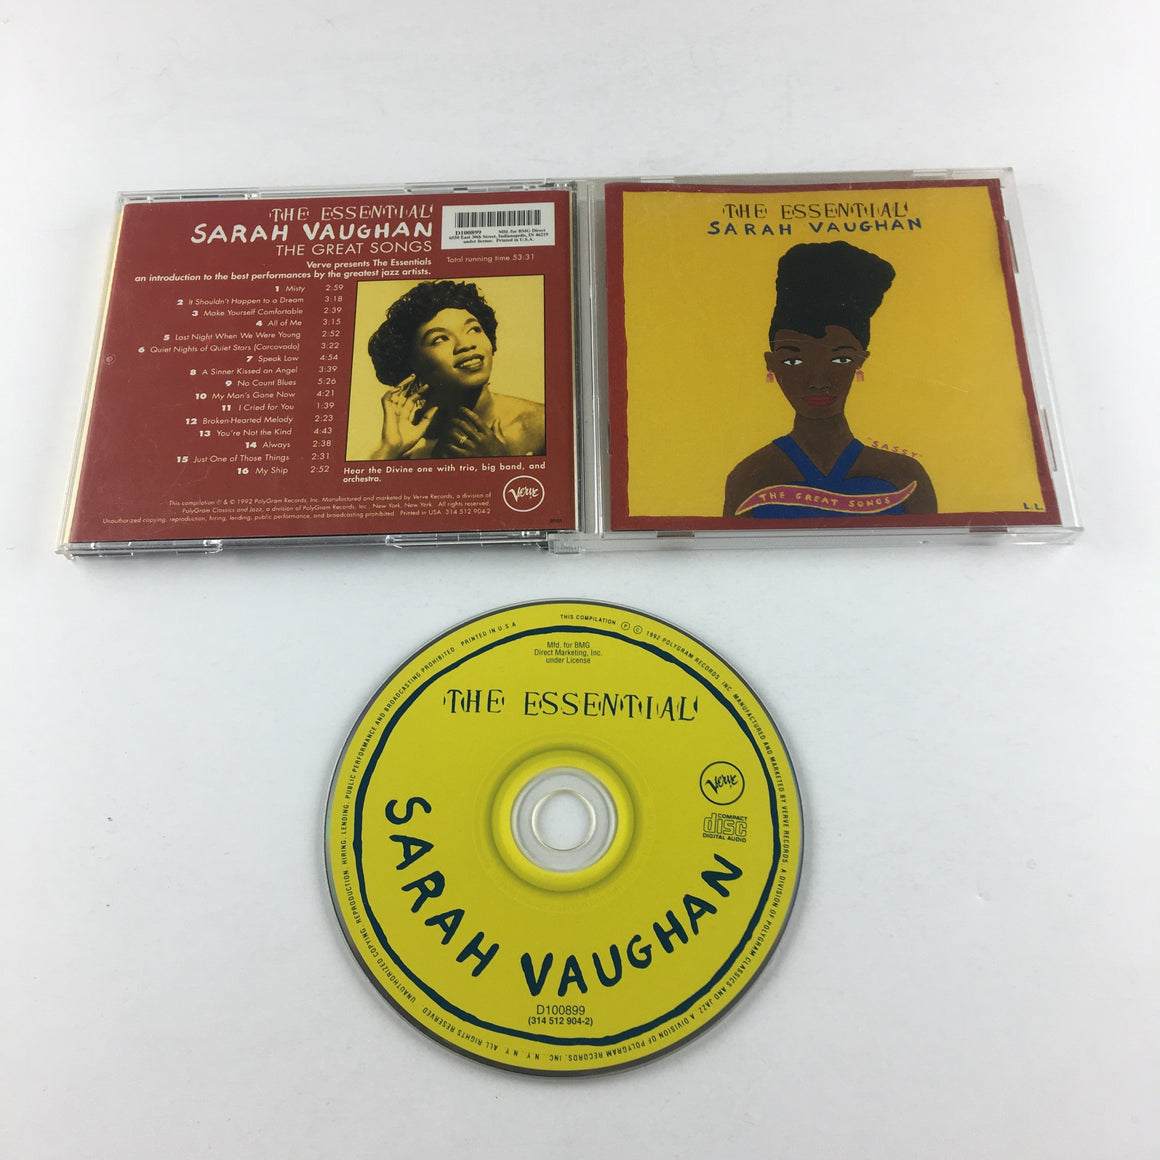 Sarah Vaughan The Essential Sarah Vaughan: The Great Songs Used CD VG 314 512 904-2